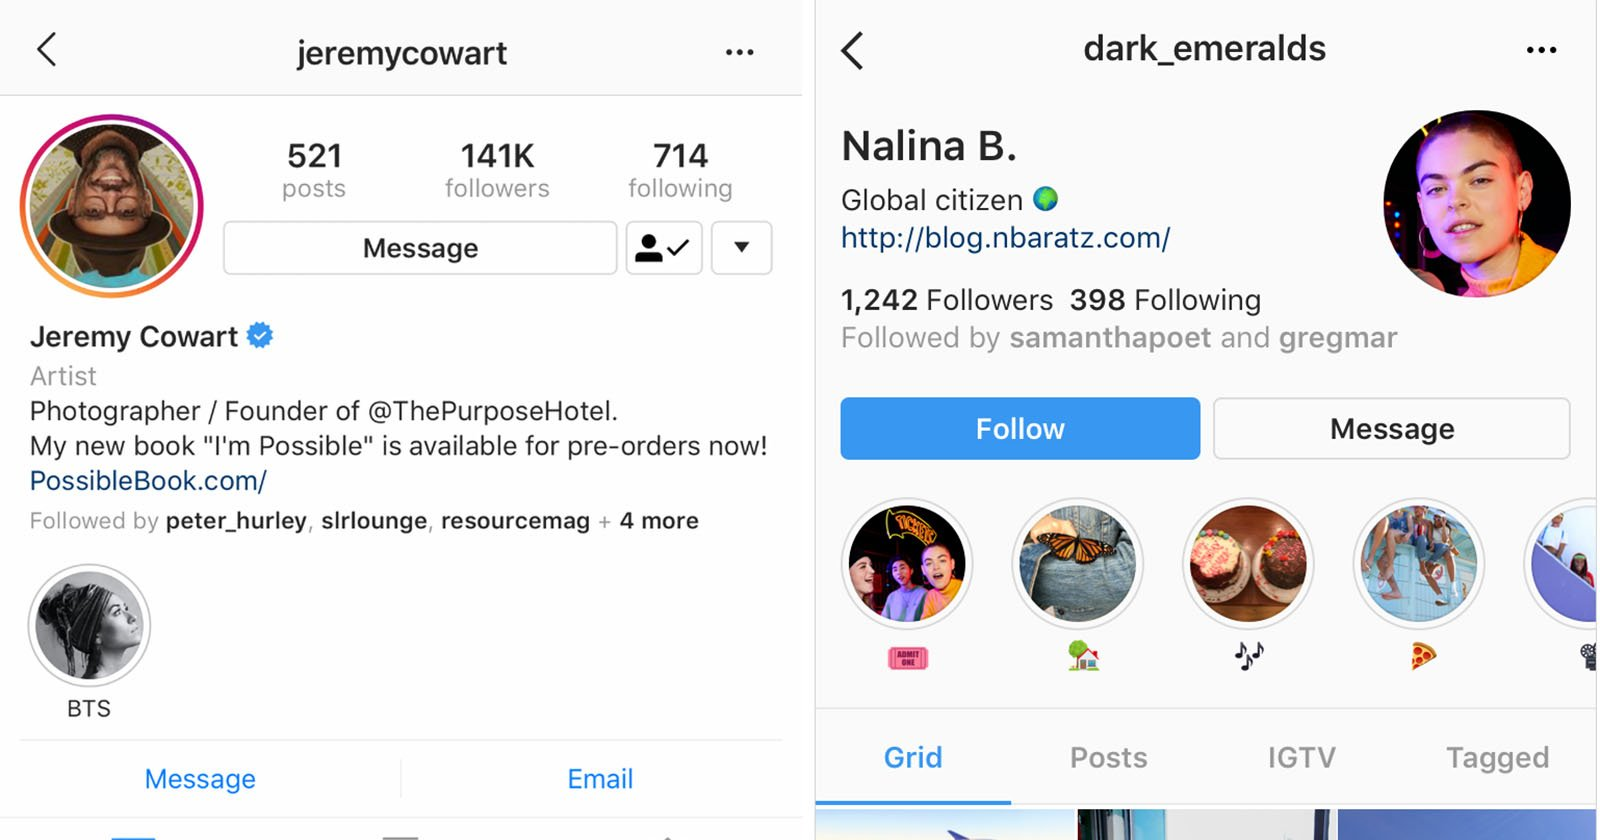 Instagram Redesigns Profiles to Focus Less on Follower Count